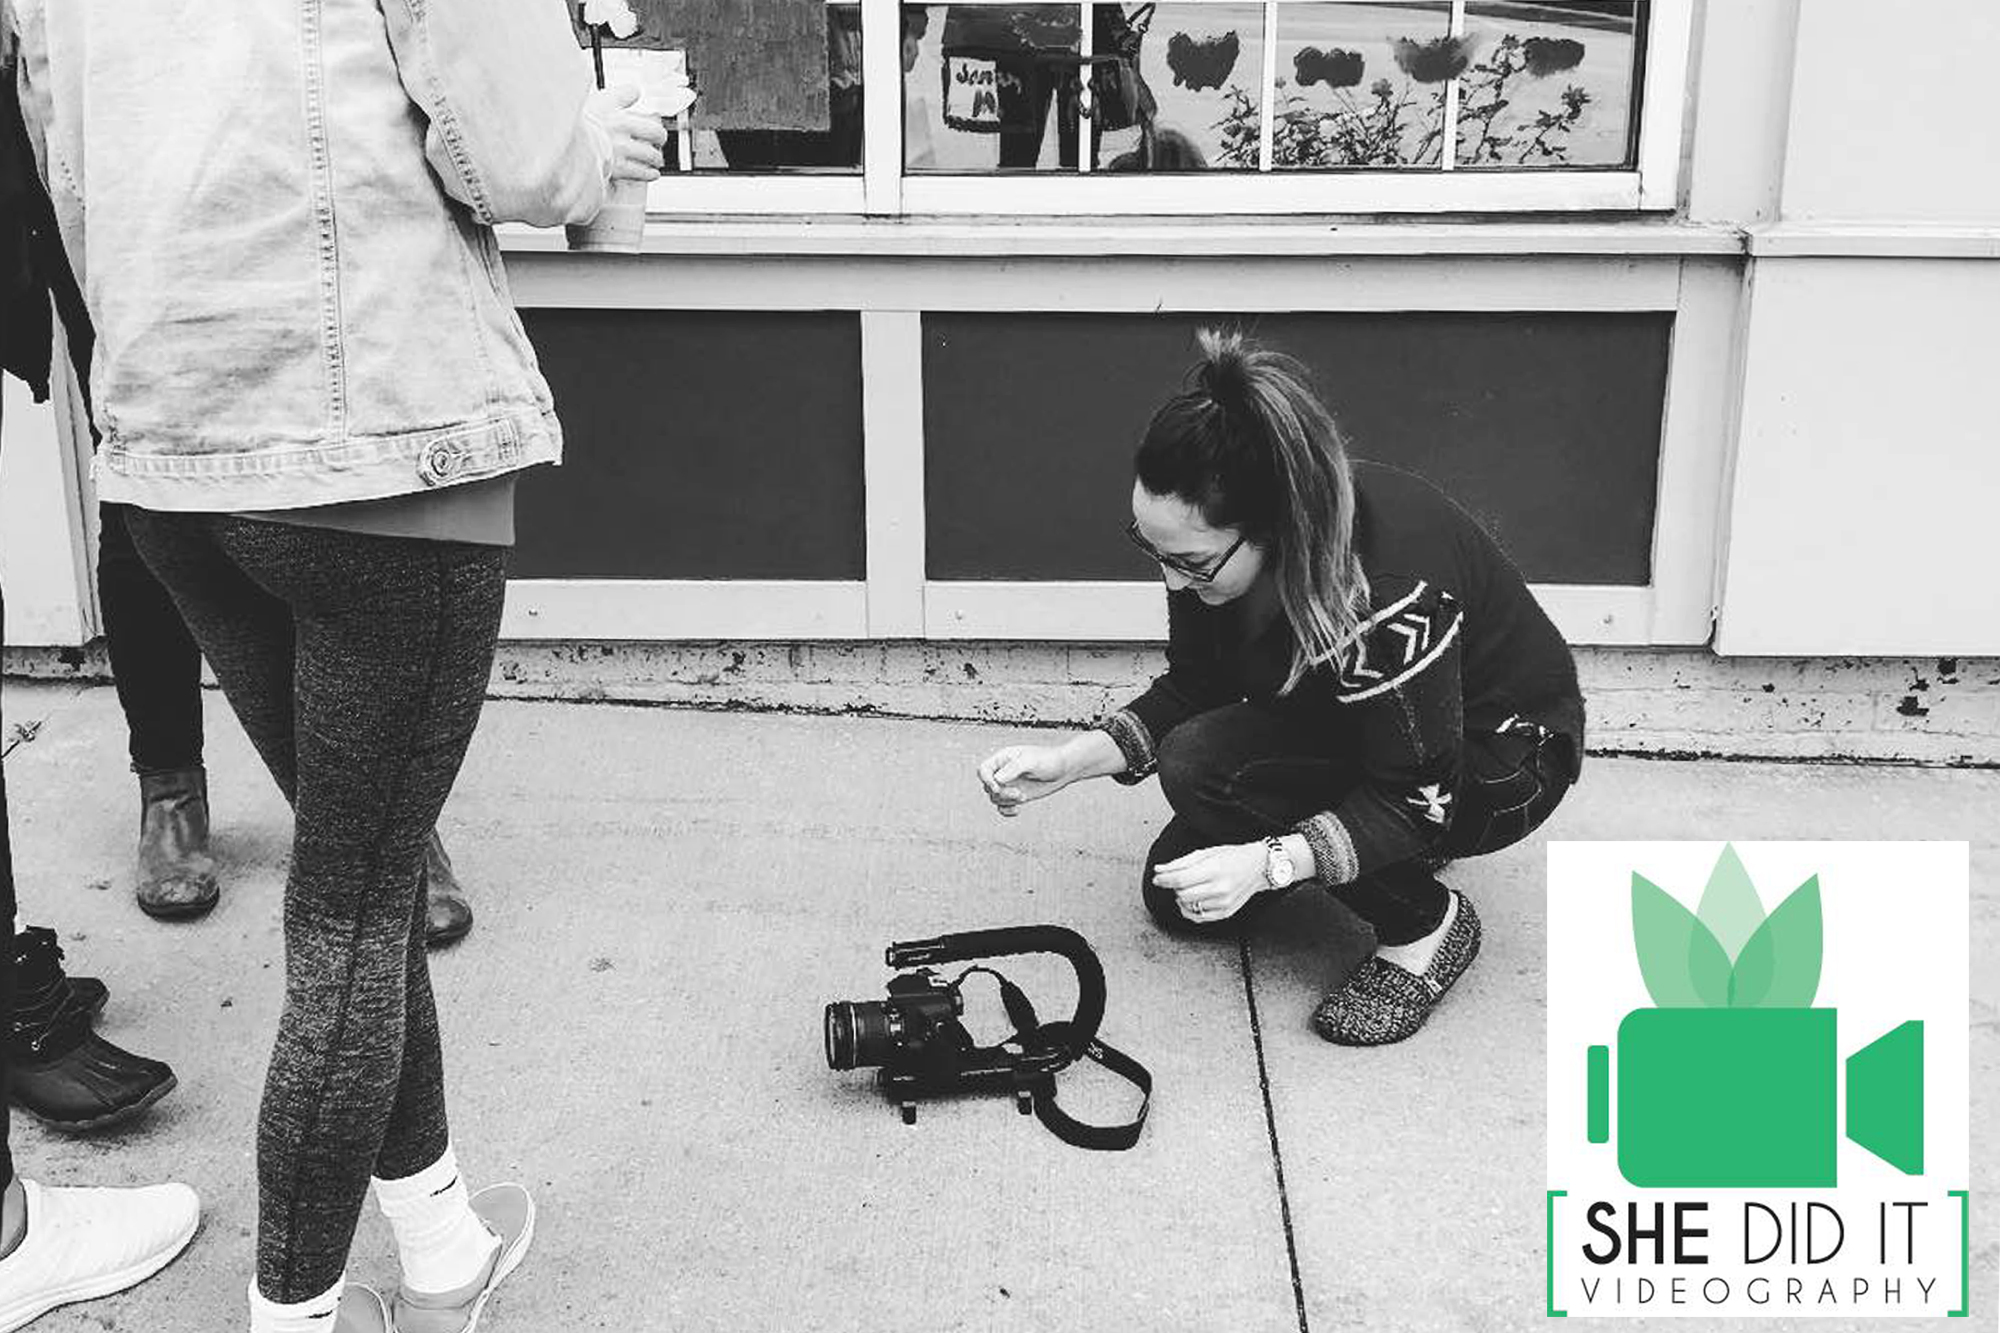 The goal of SHE is to continue the mission of supporting small/local business in Northeast Ohio through the lens! SHE wants YOU, the small and local businesses, to have quality access to video production that is creative, often outside the box and will give your future customers a look at who you are.